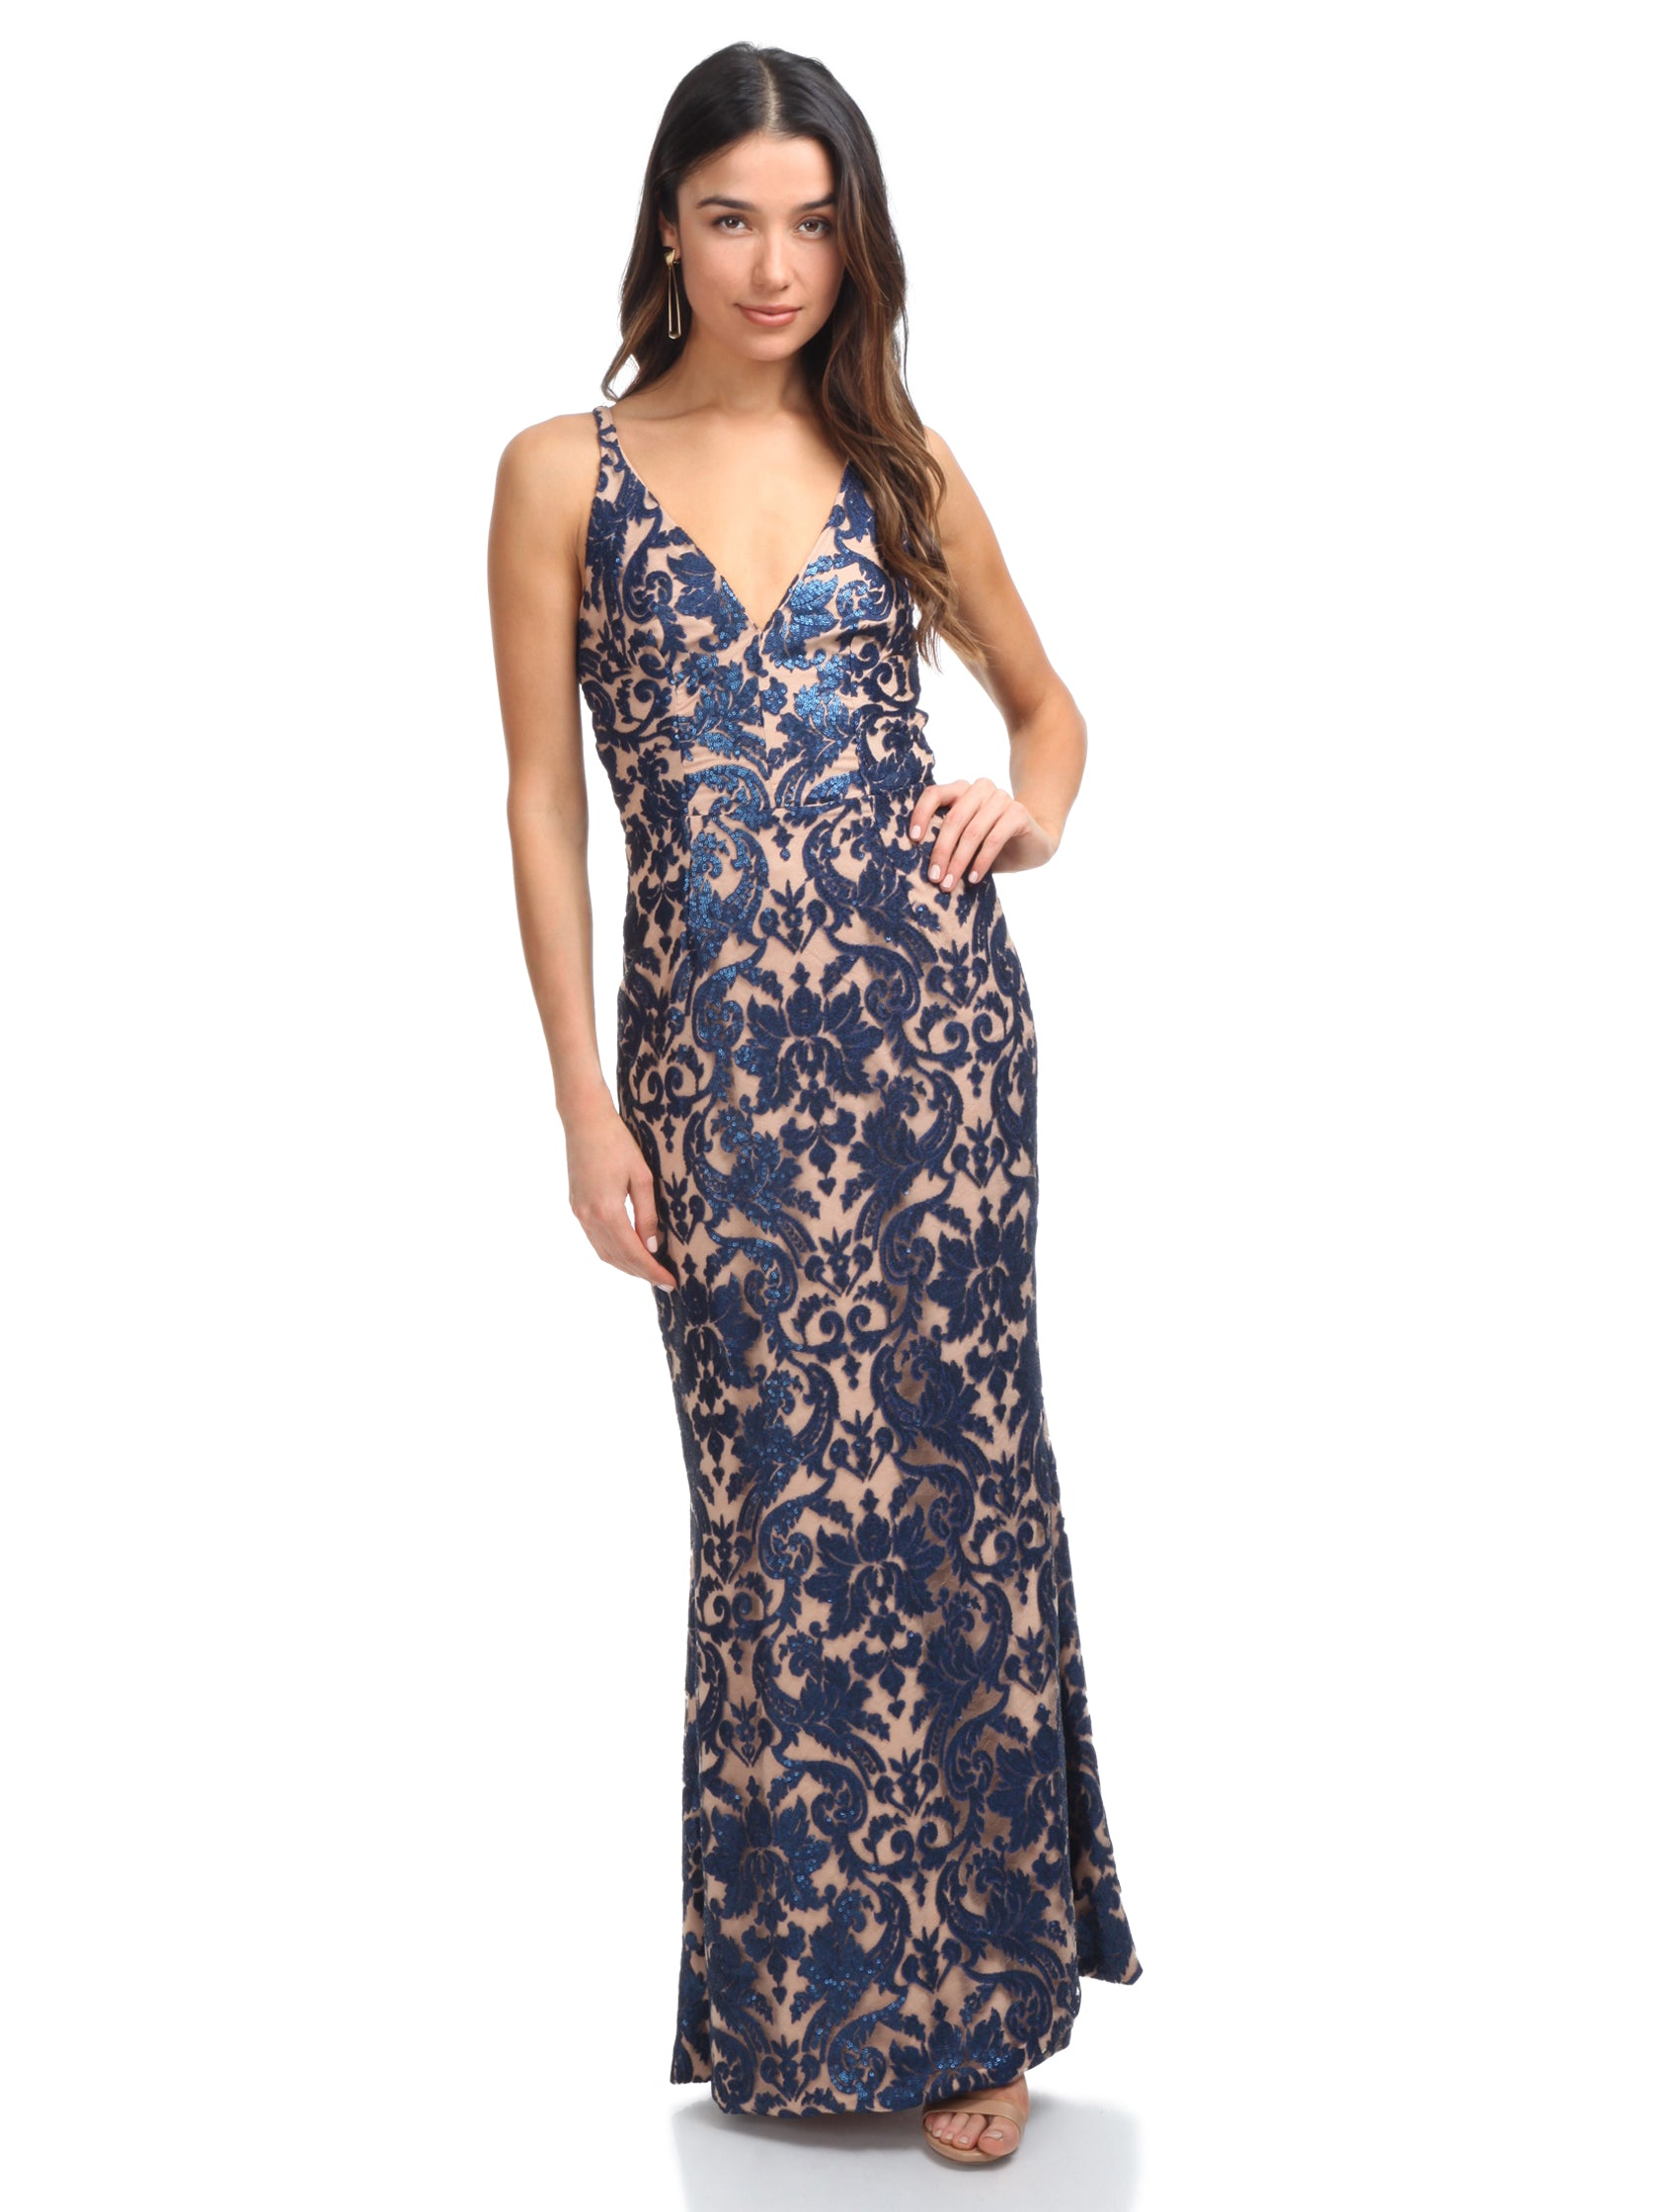 Girl outfit in a dress rental from Dress the Population called Karen Sequin Lace Gown